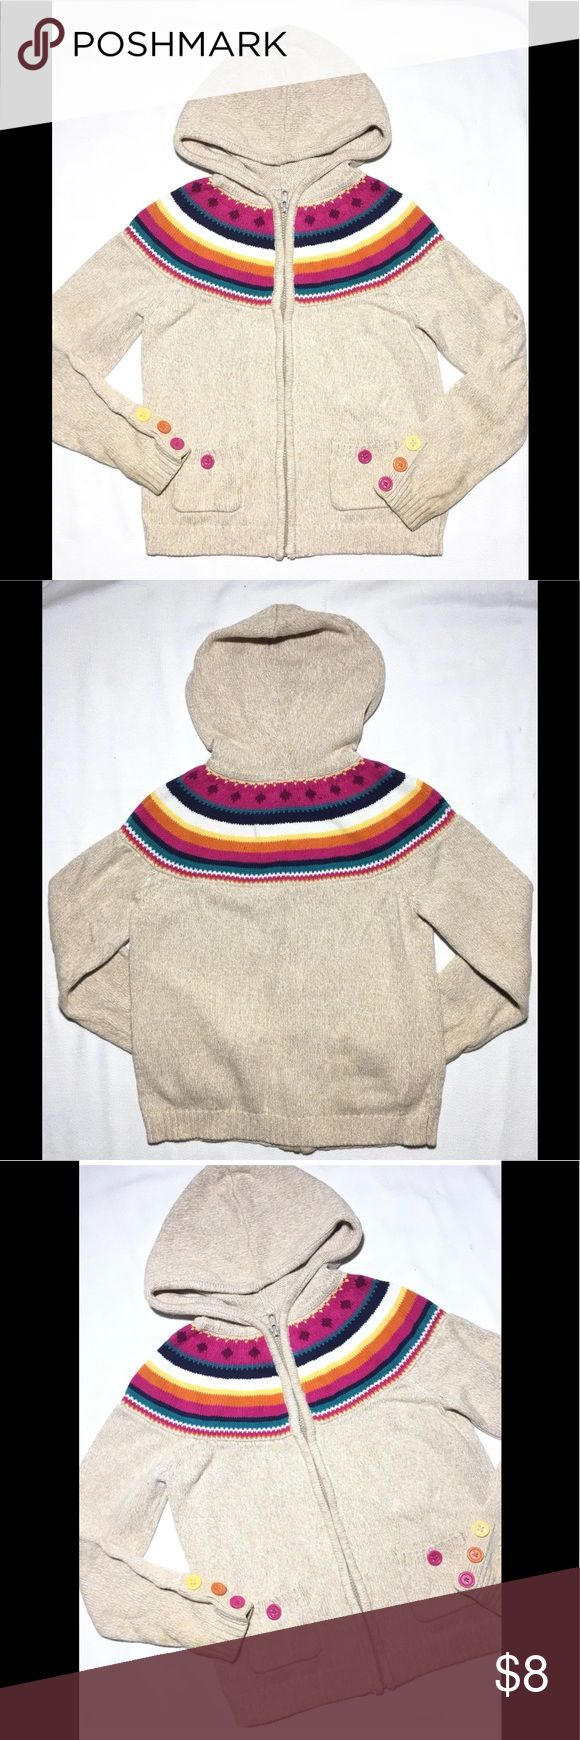 """Gymboree L 10 12 Sweater Cardigan Hoodie Girls GymboreeZip Up CardiganSweater Girls Size L 10 12 Large Tan Beige Rainbow Hoodie Great used condition - shows slight wear on cuffs only. Measurements taken laying flat: Chest: 15"""" Sleeve length from center: 25.5"""" Sleeve length from armpit: 15.75"""" Overall length: 20"""" Gymboree Shirts & Tops Sweaters"""